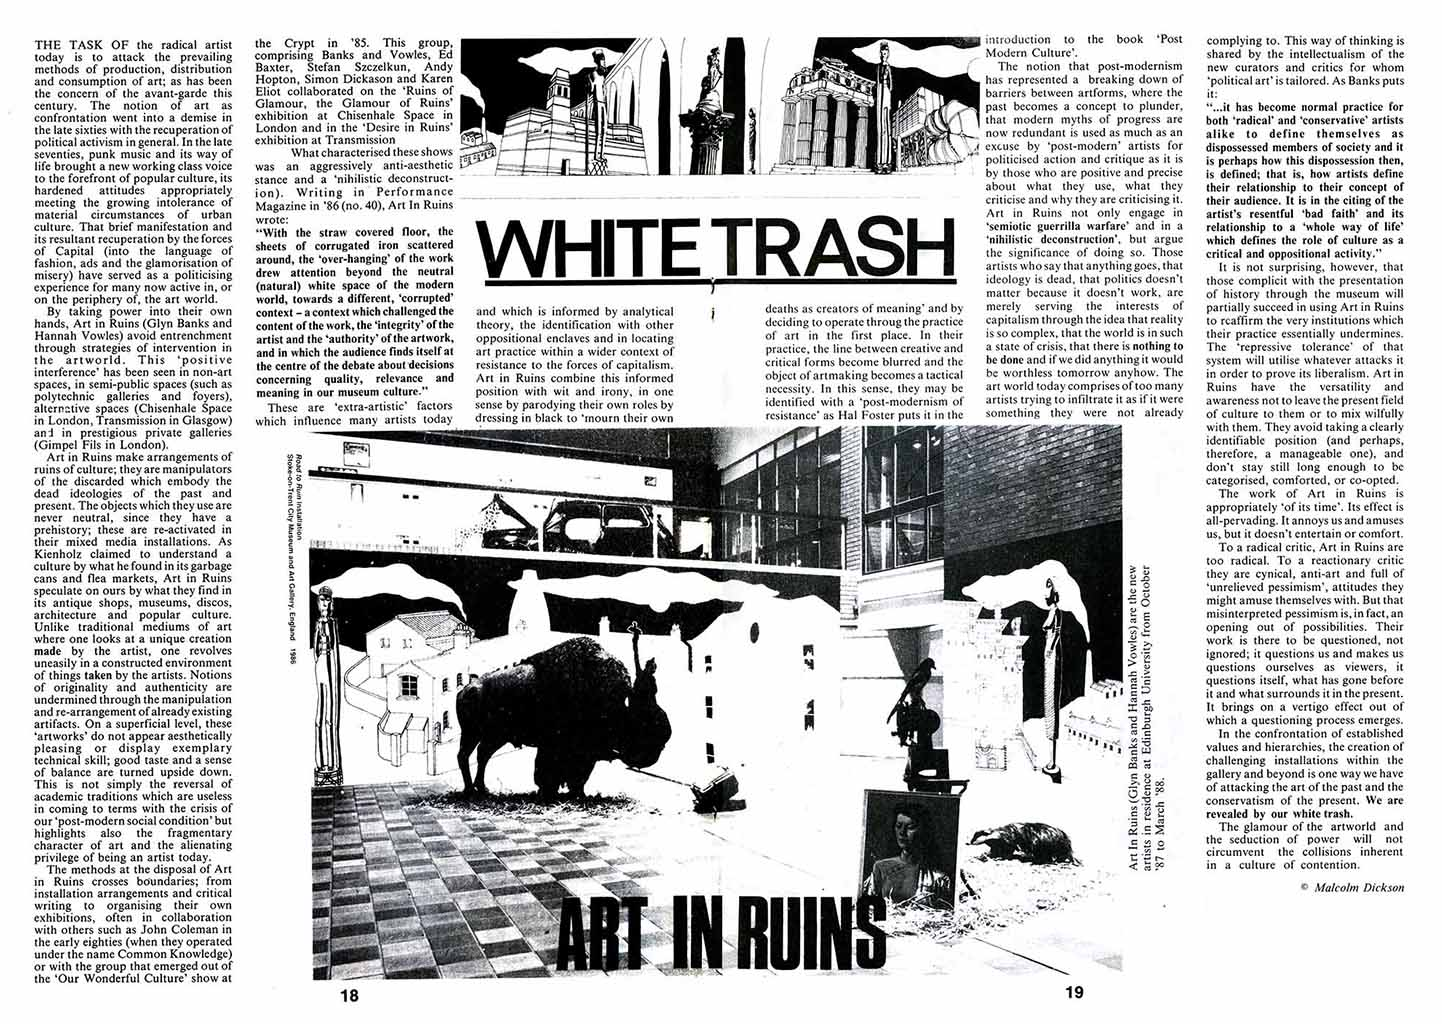 White Trash: Art in Ruins Feature by Malcolm Dickson 1987